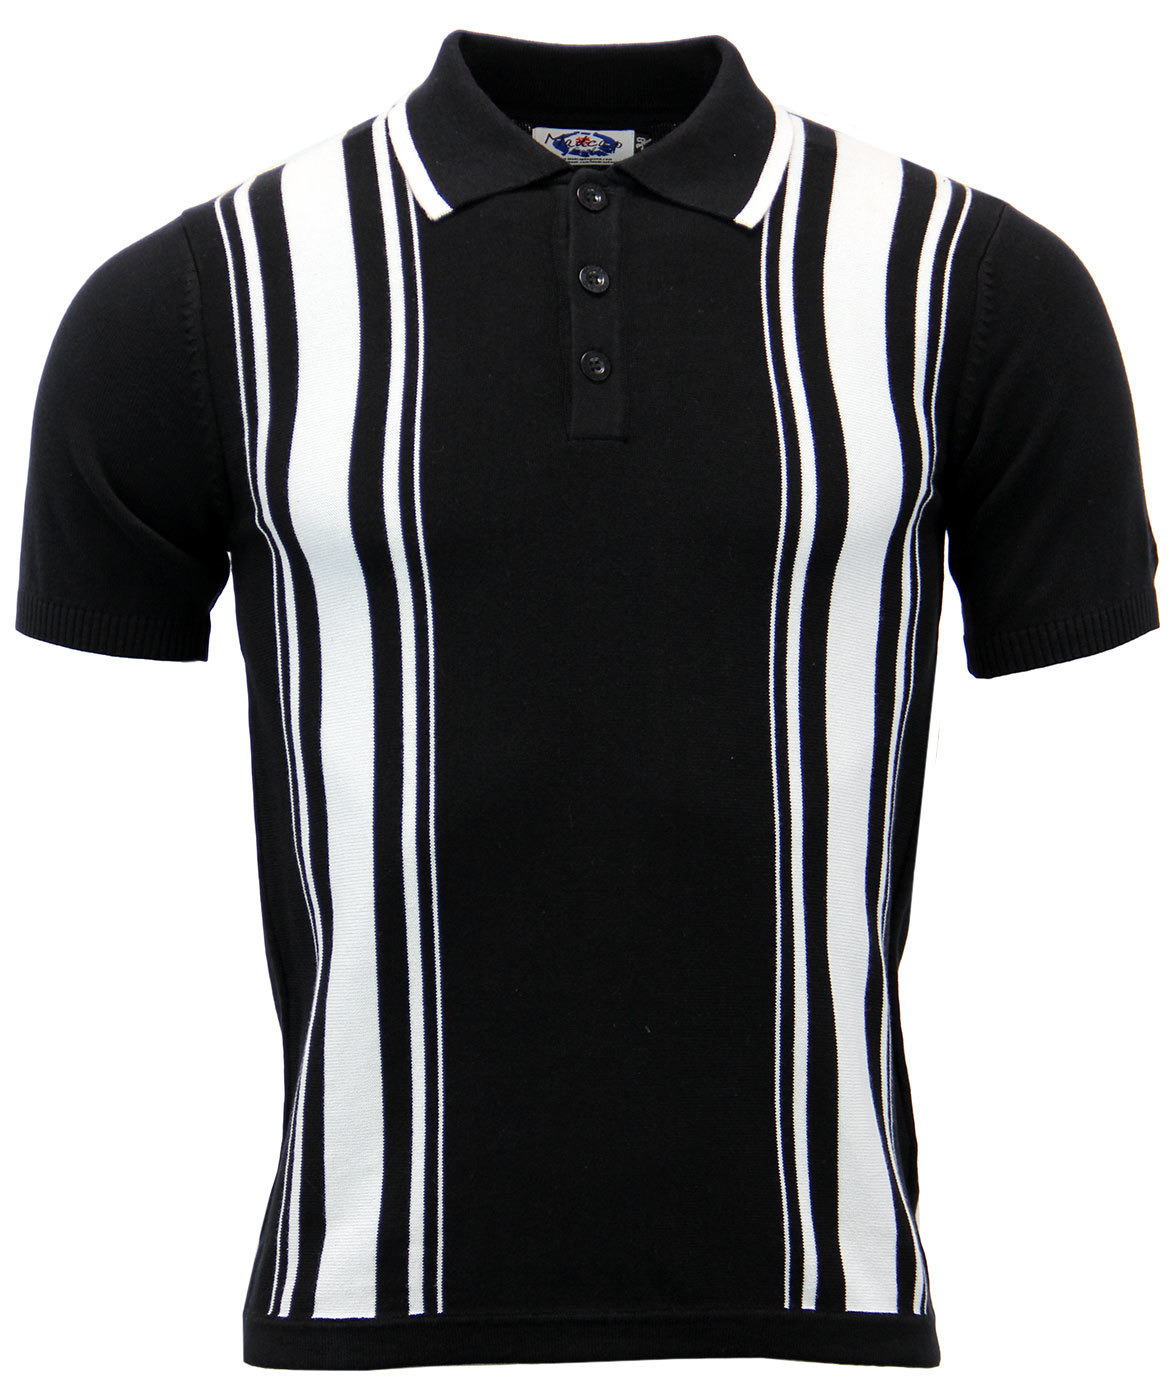 MADCAP ENGLAND Aftermath Retro 60s Mod Knitted Stripe Polo